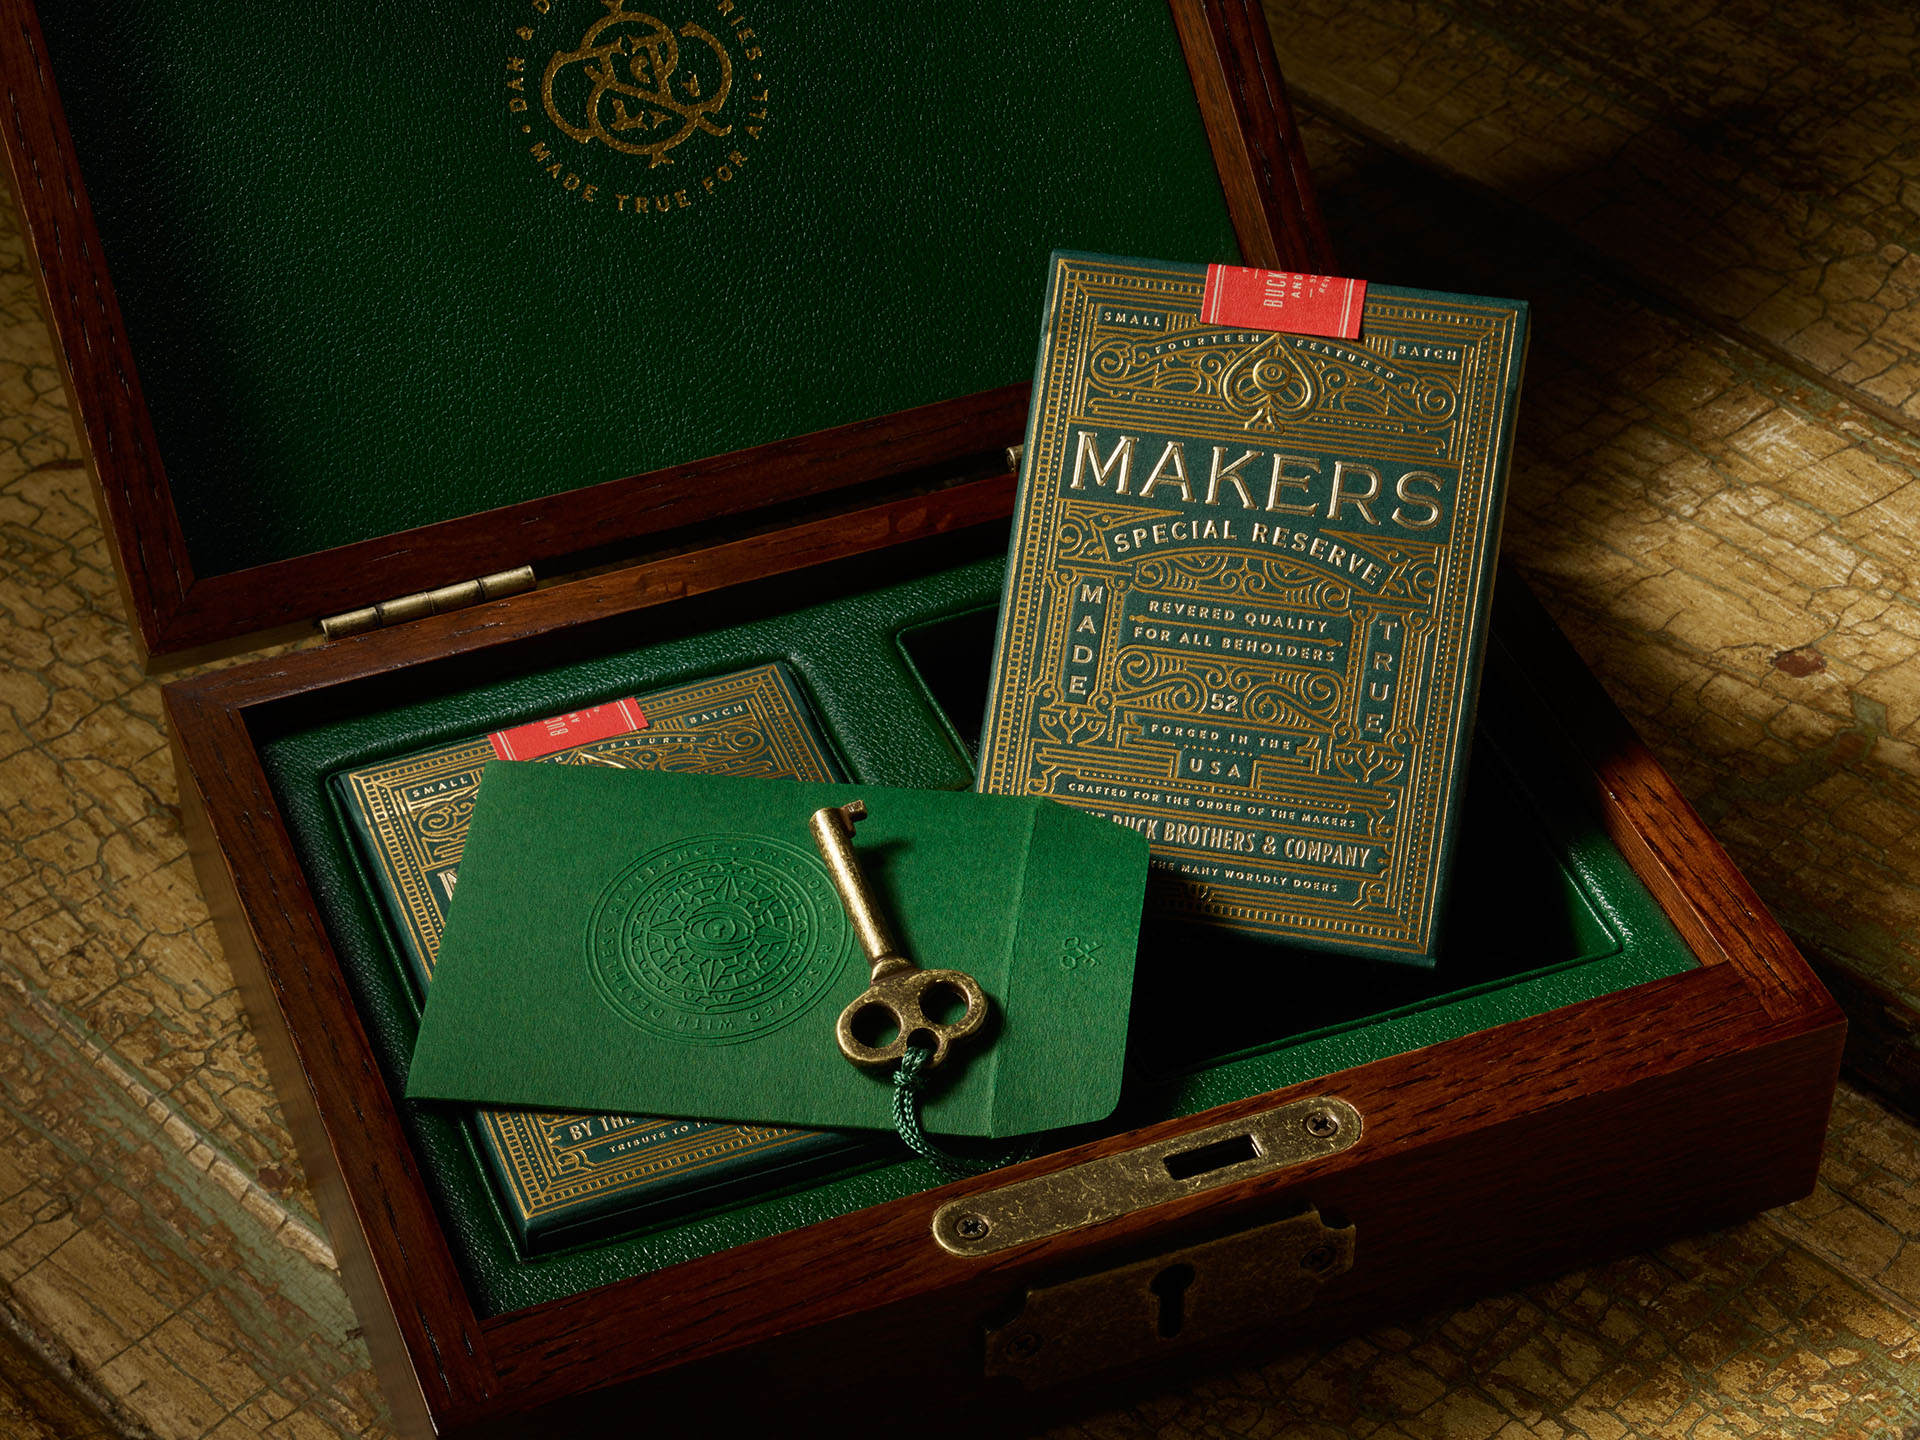 Makers Playing Cards in a wooden box with a key